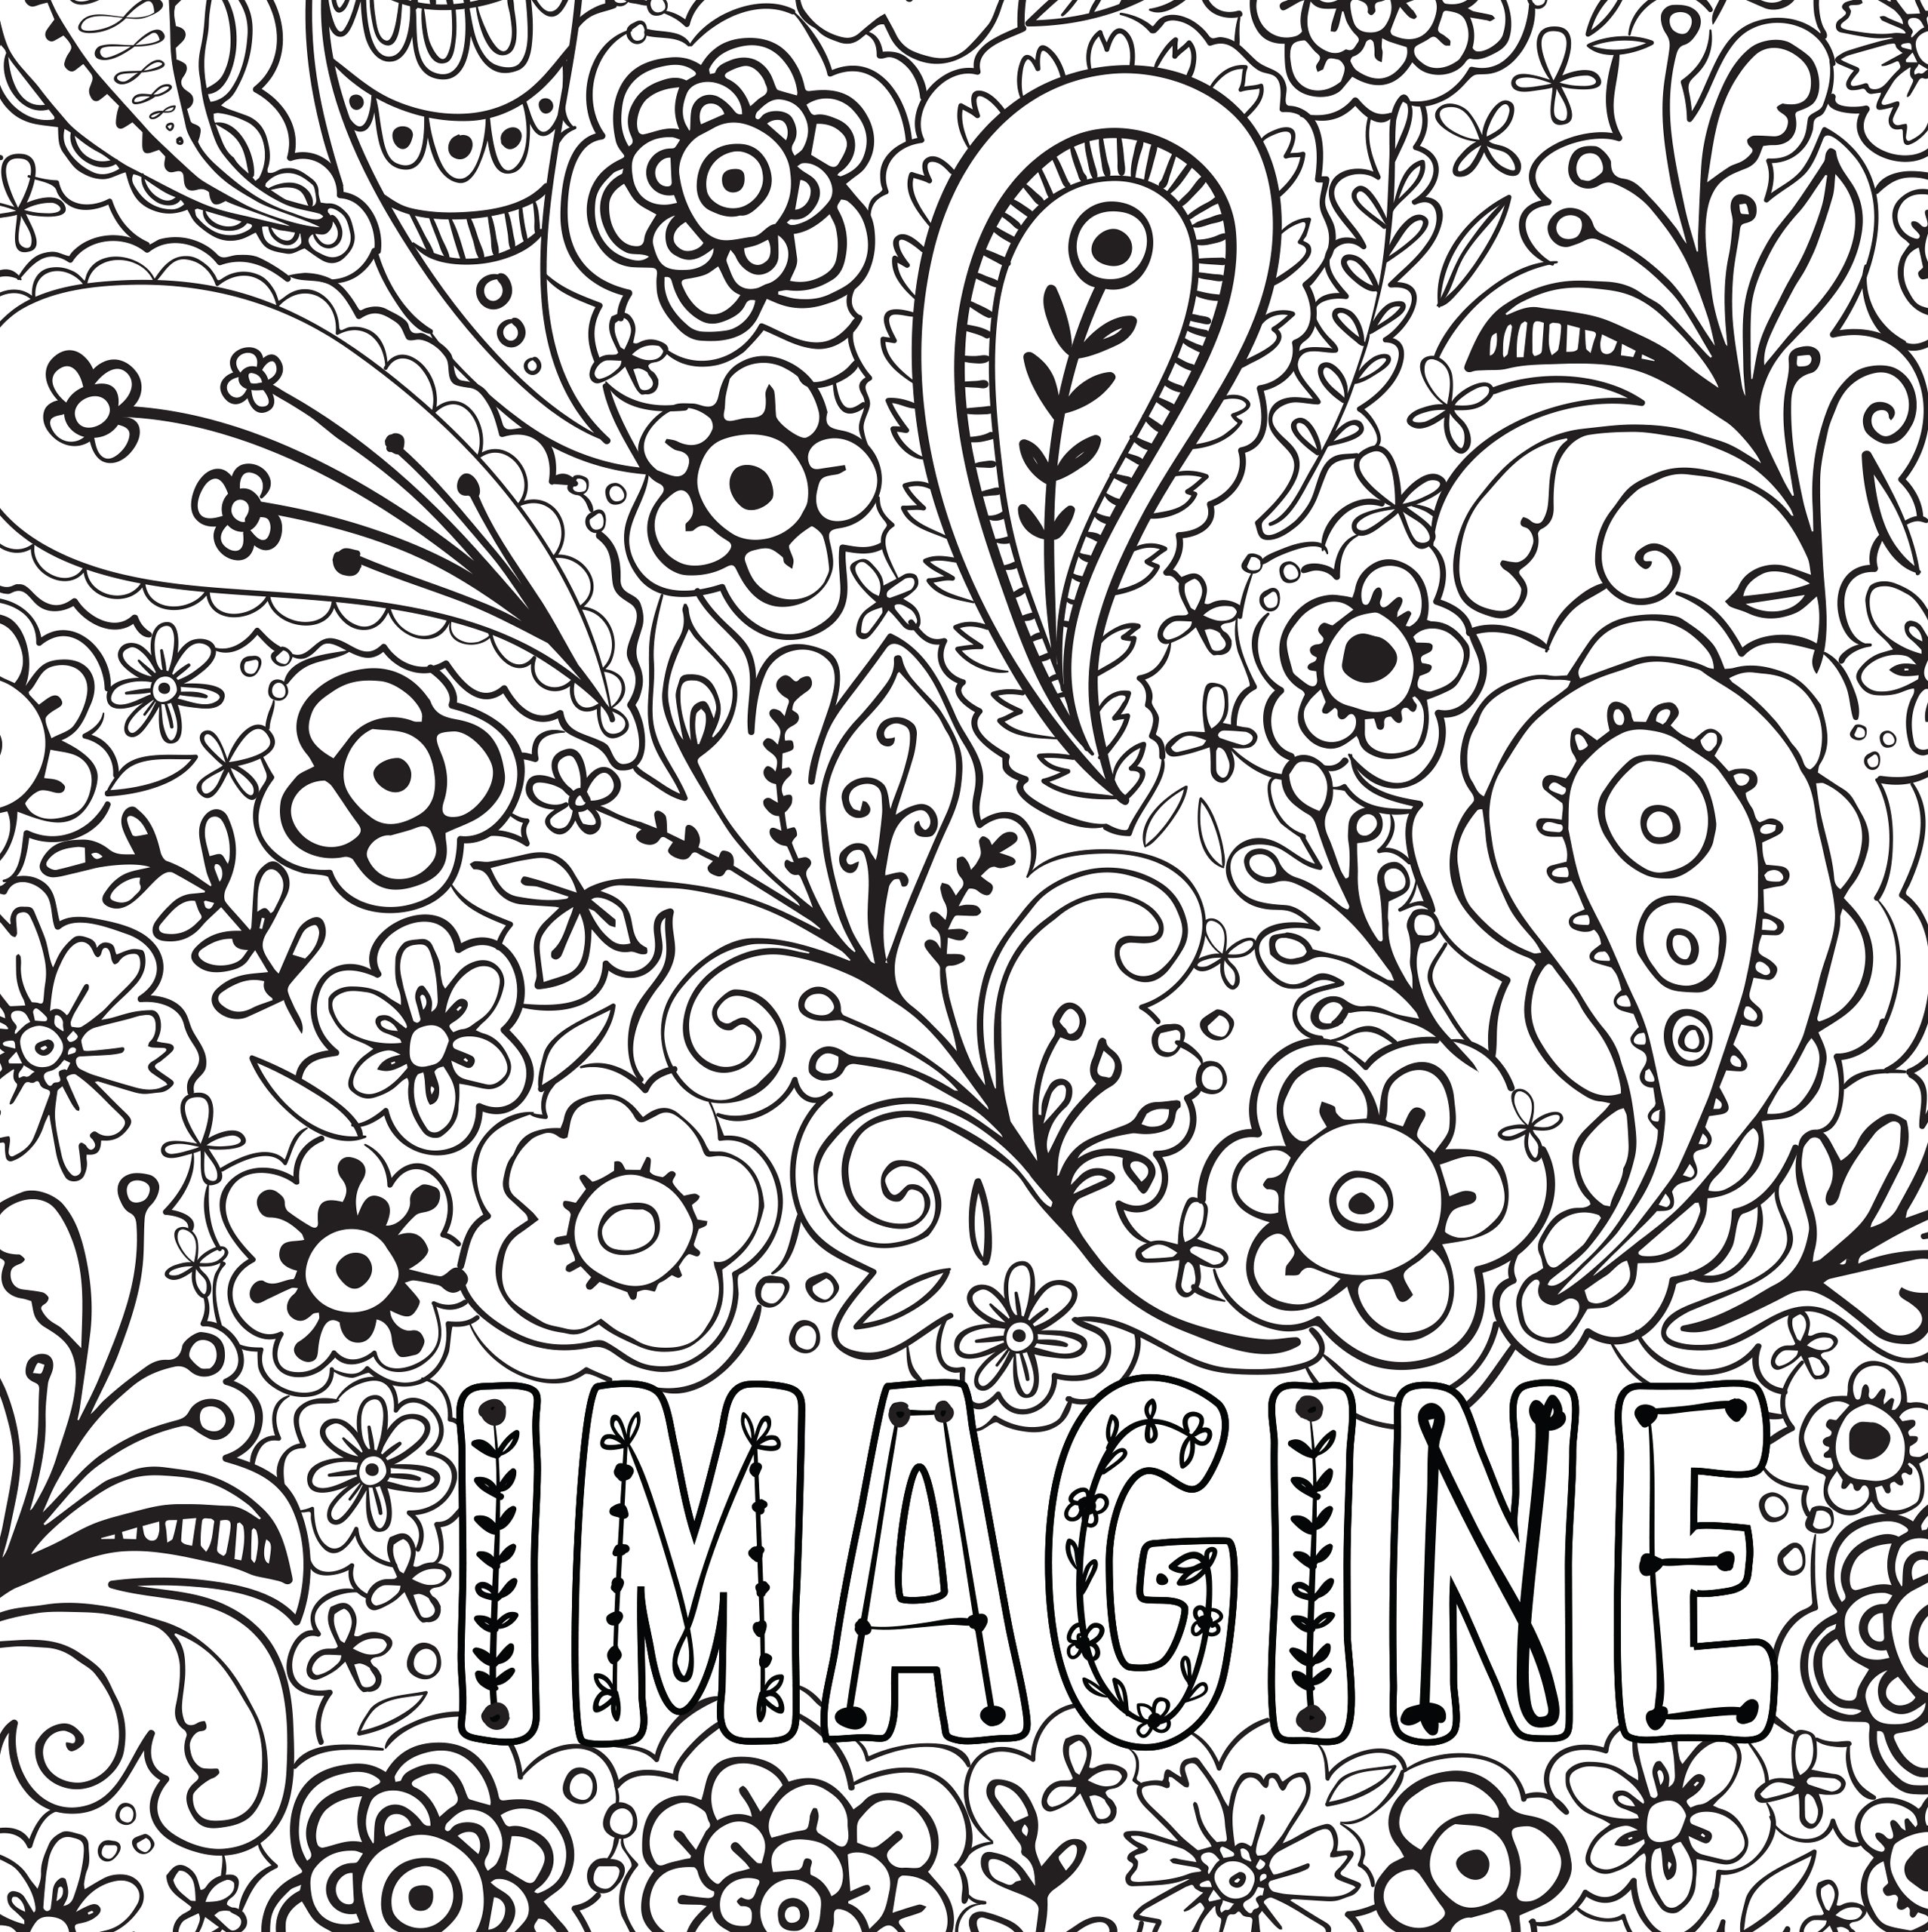 Joyful Inspiration Adult Coloring Book (31 stress-relieving designs ...